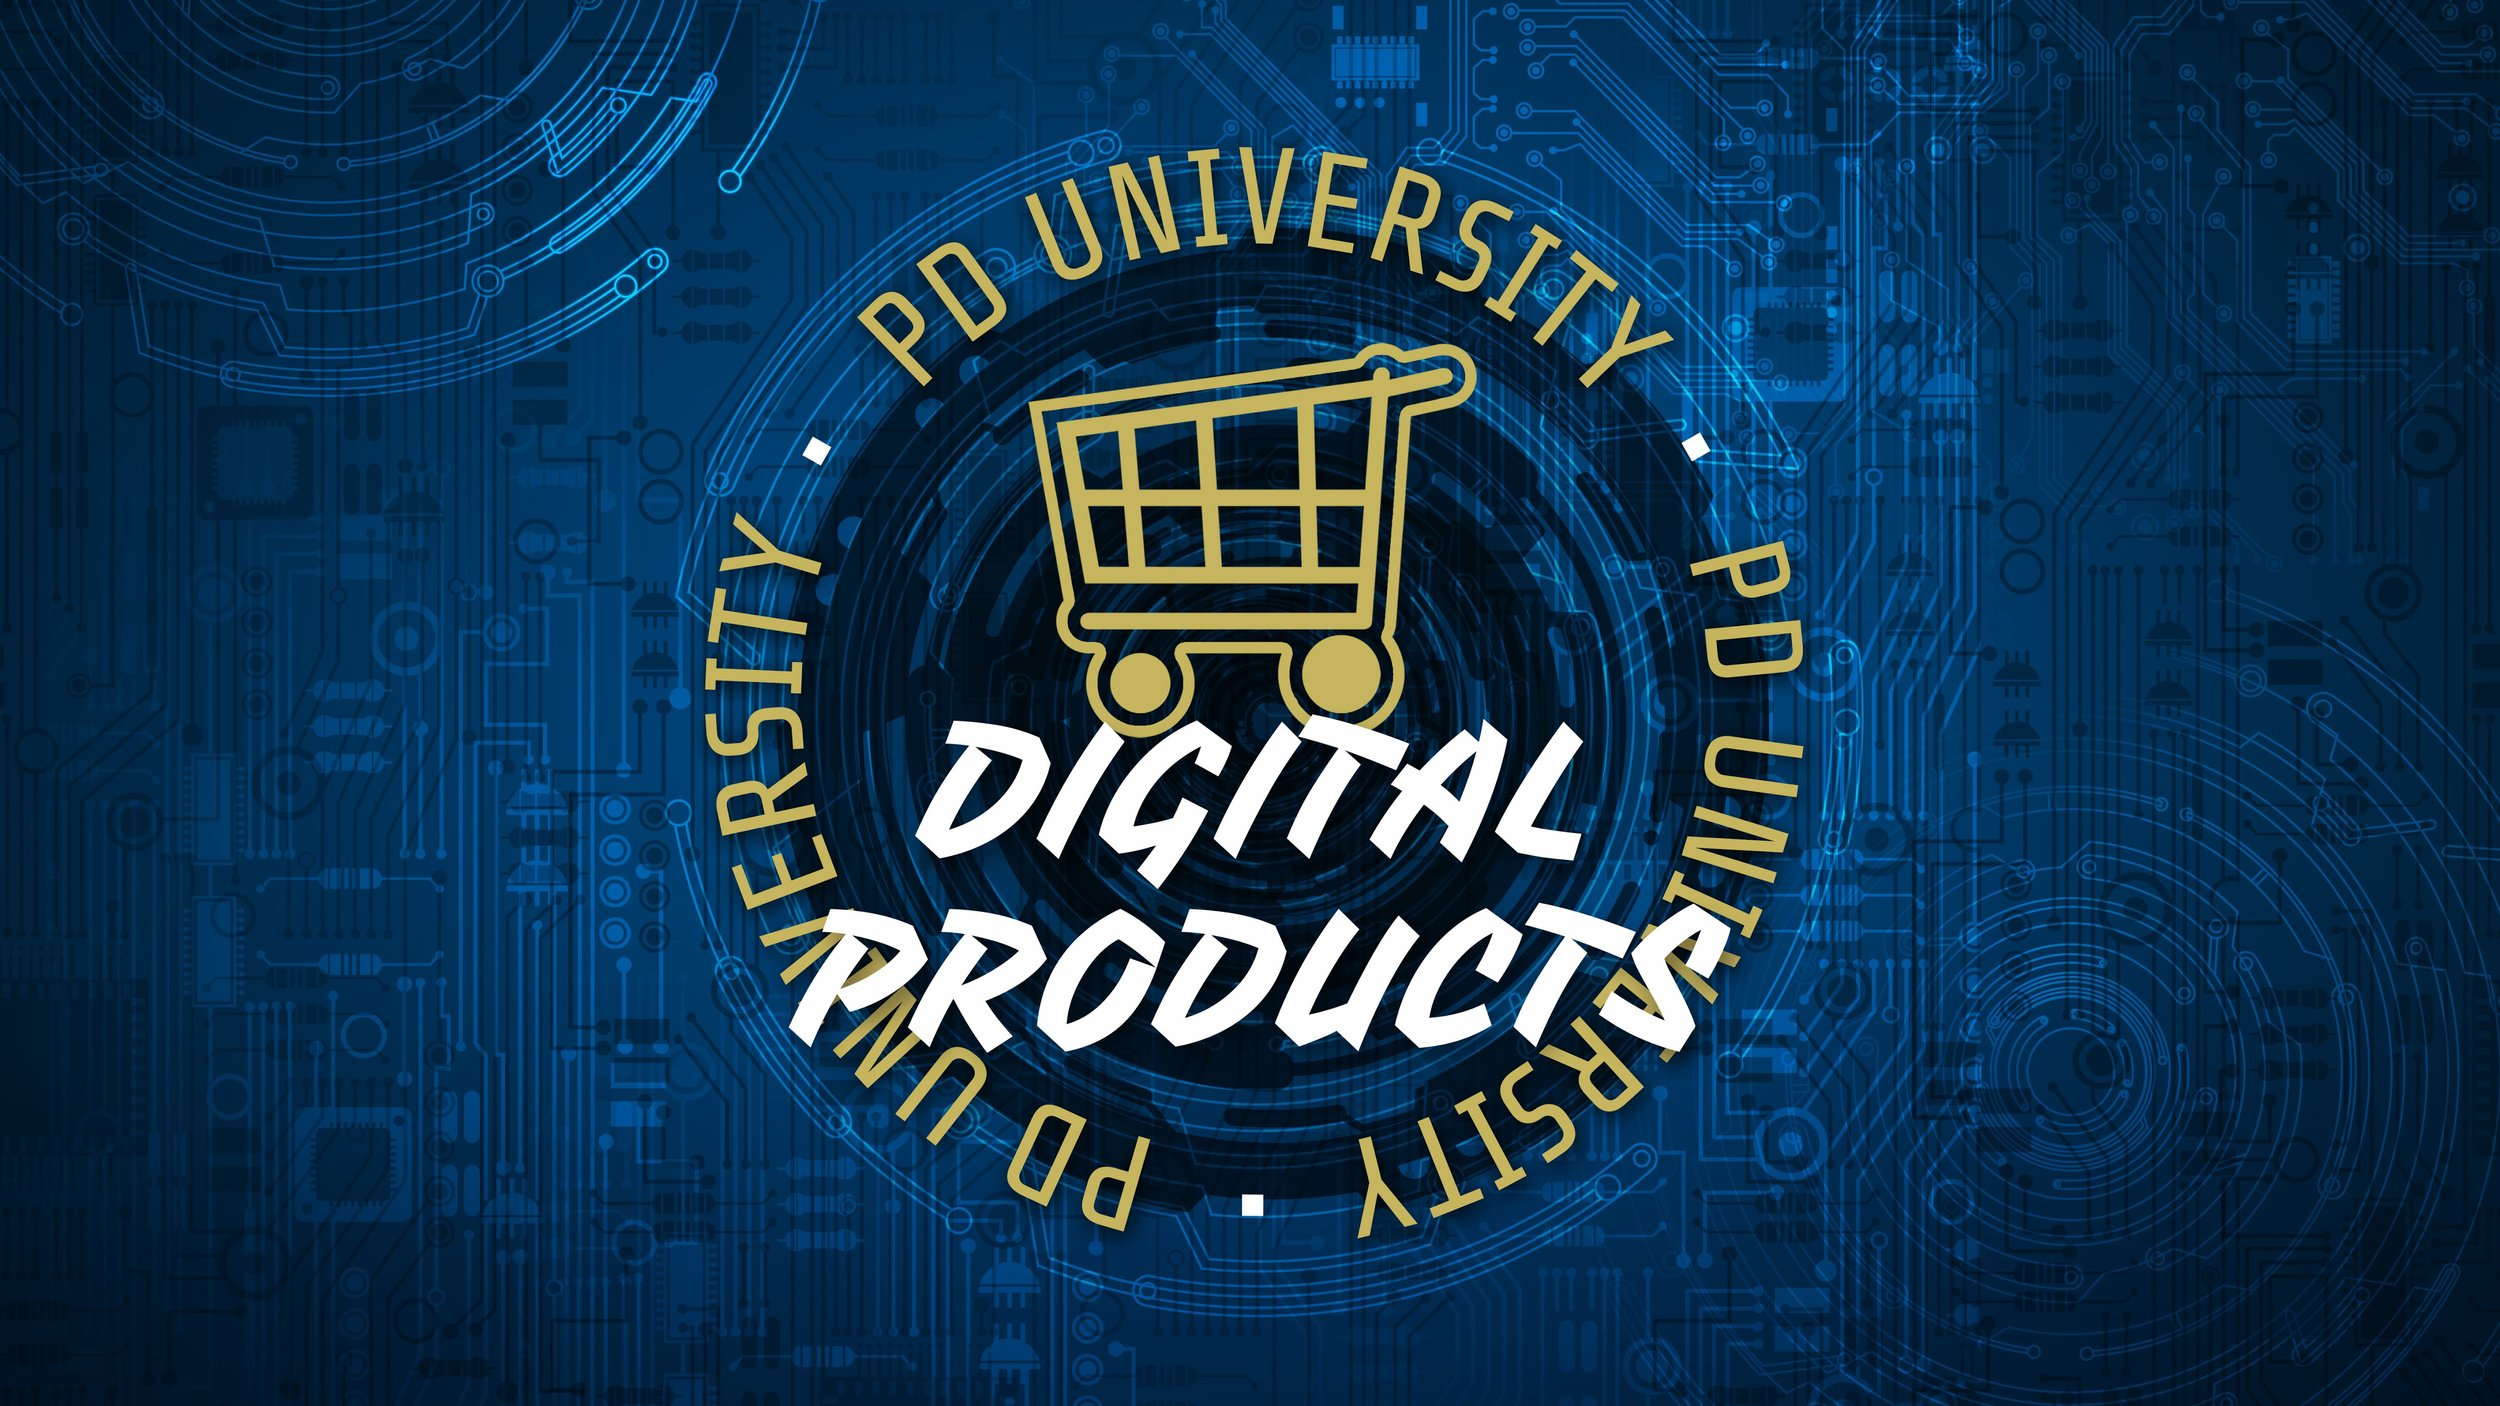 Digital_Products_Page_Banner.jpg